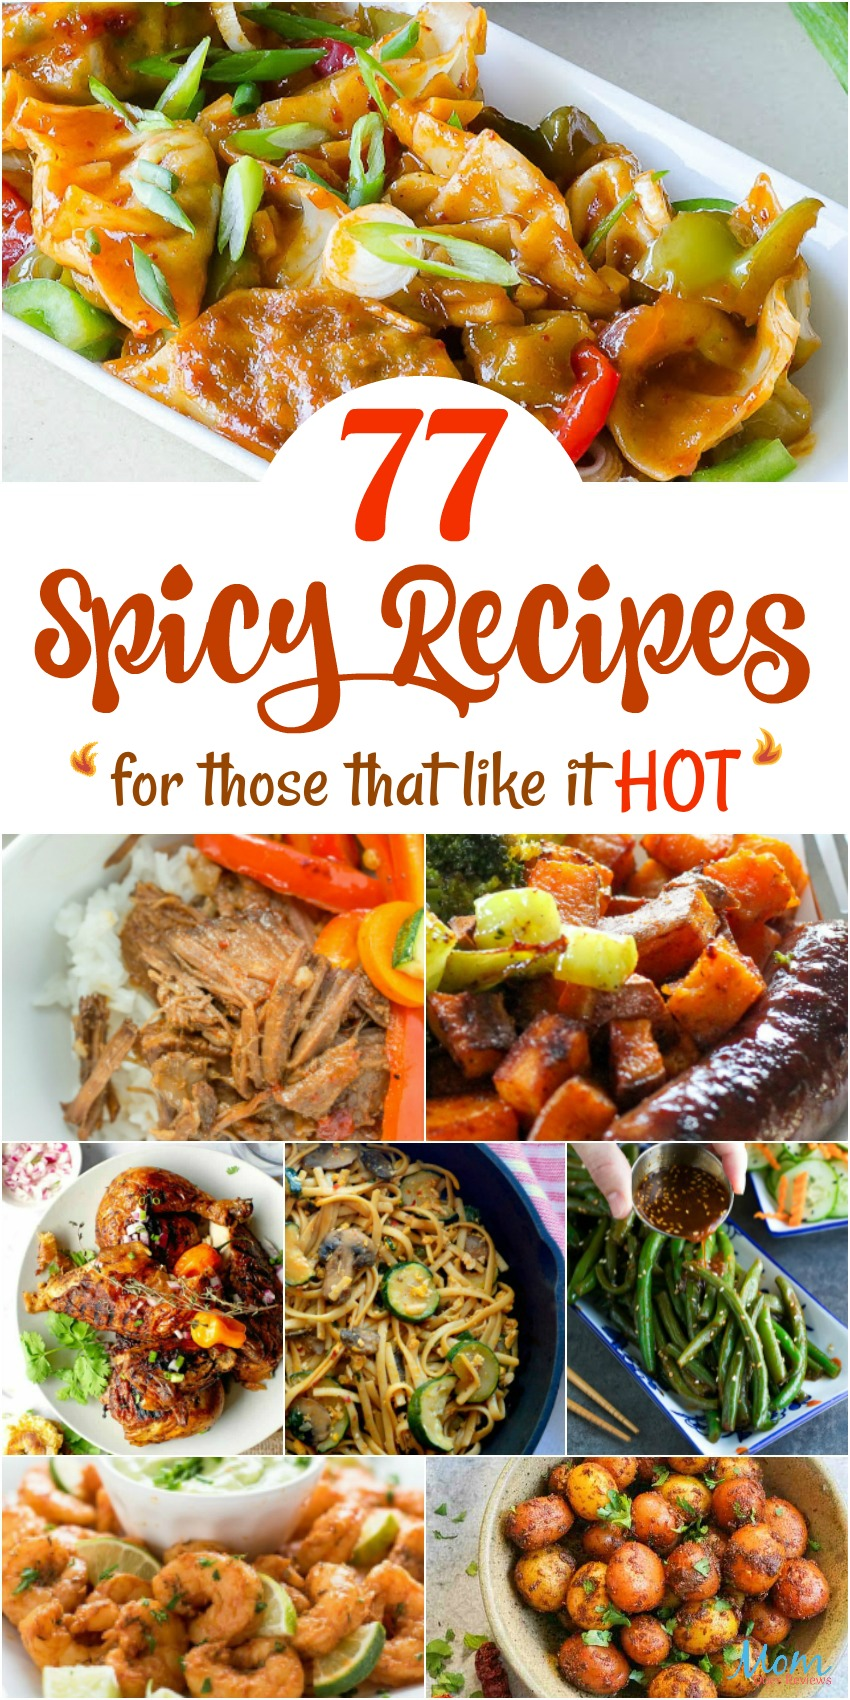 77 Spicy Recipes for Those that Like it Hot #RECIPES #foodie #spicyfood